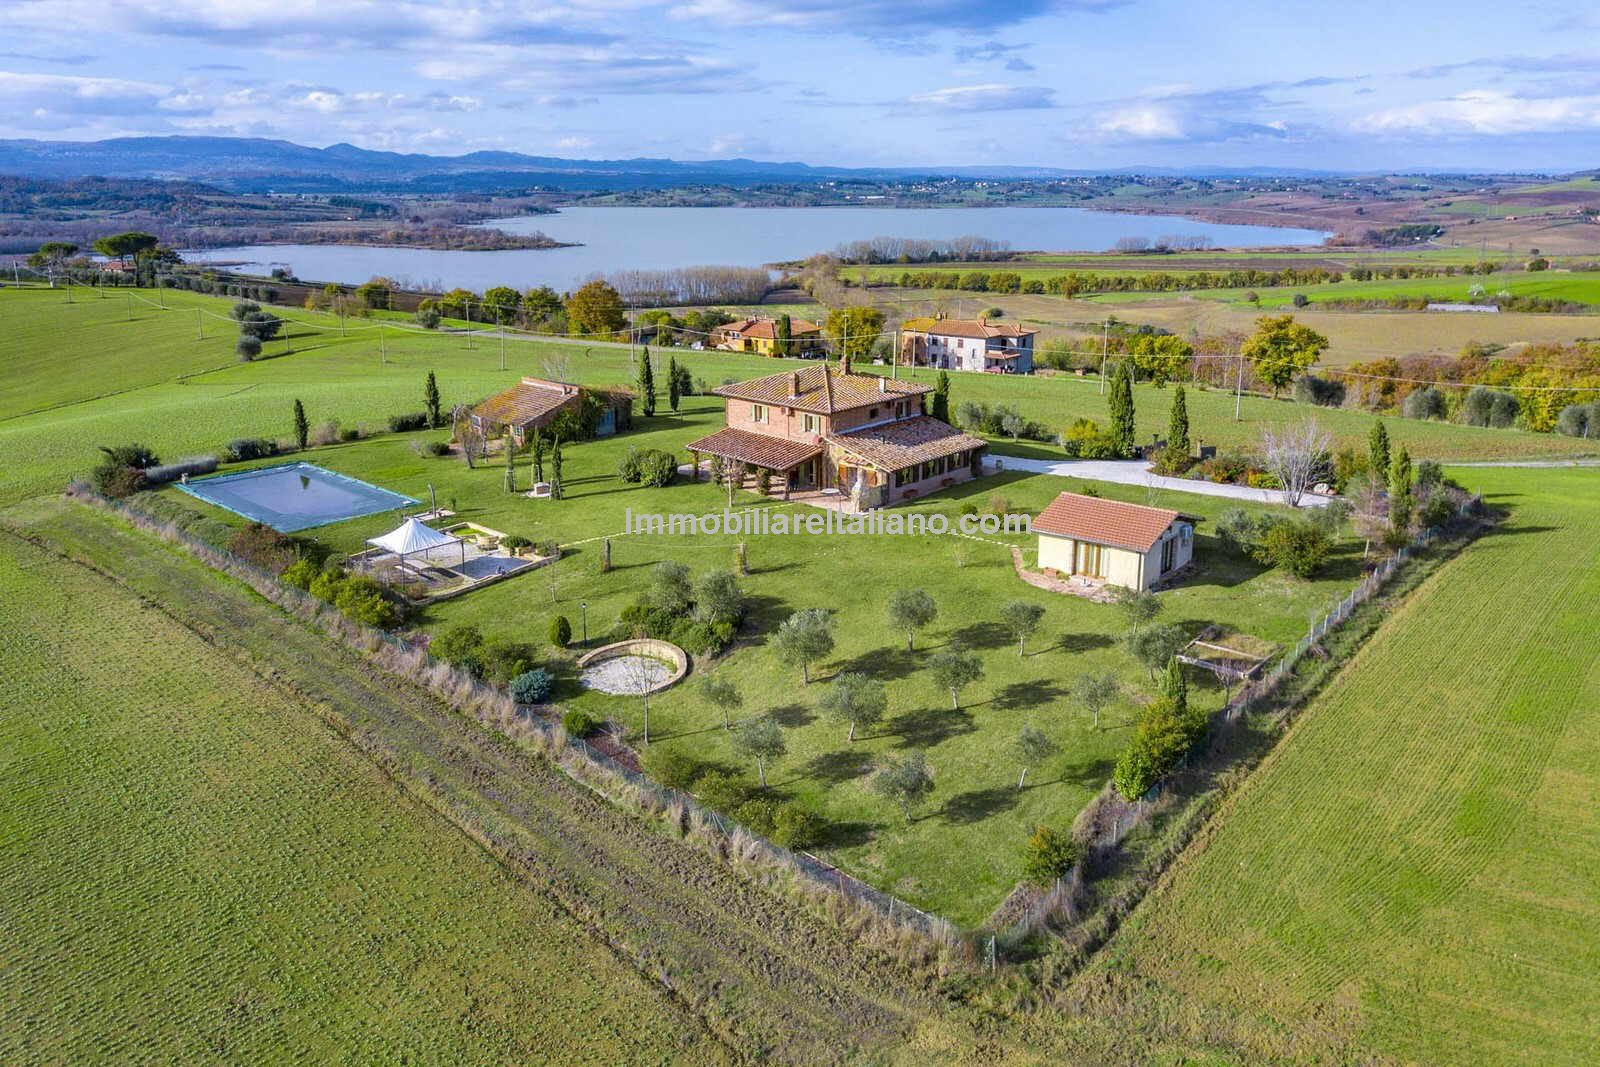 Aerial view of Farmhouse, annexes, swimming pool and gardens with Lake Trasimeno in the background